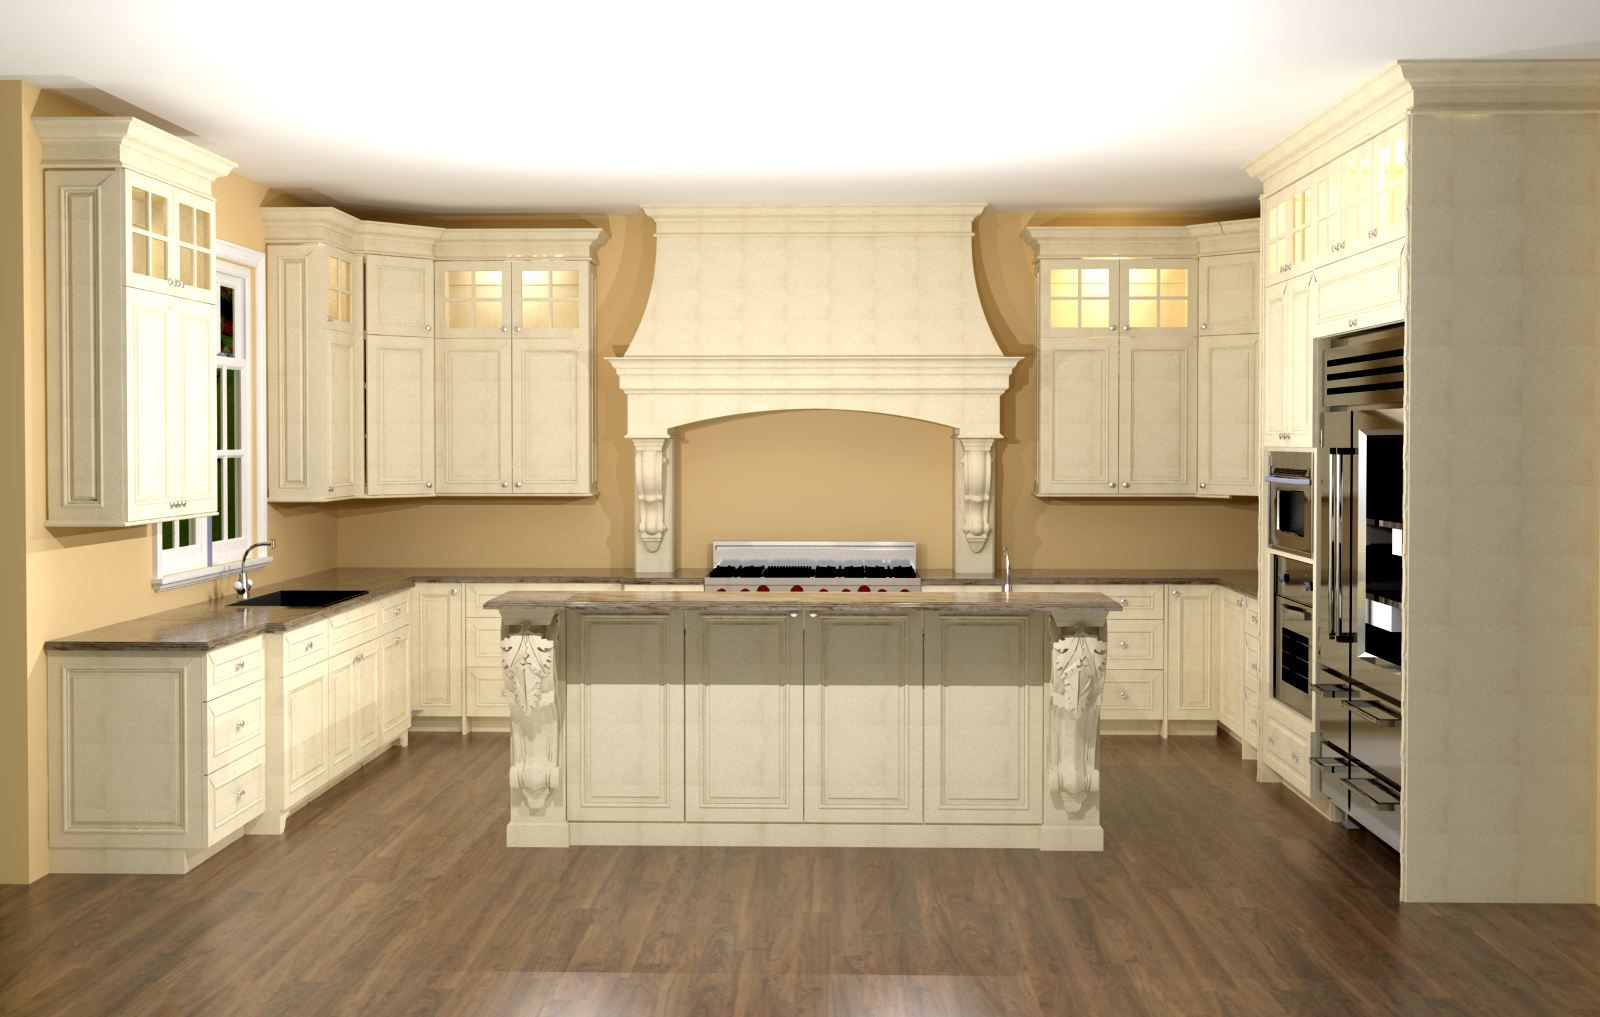 large kitchen with custom hood. features large enkeboll corbels on